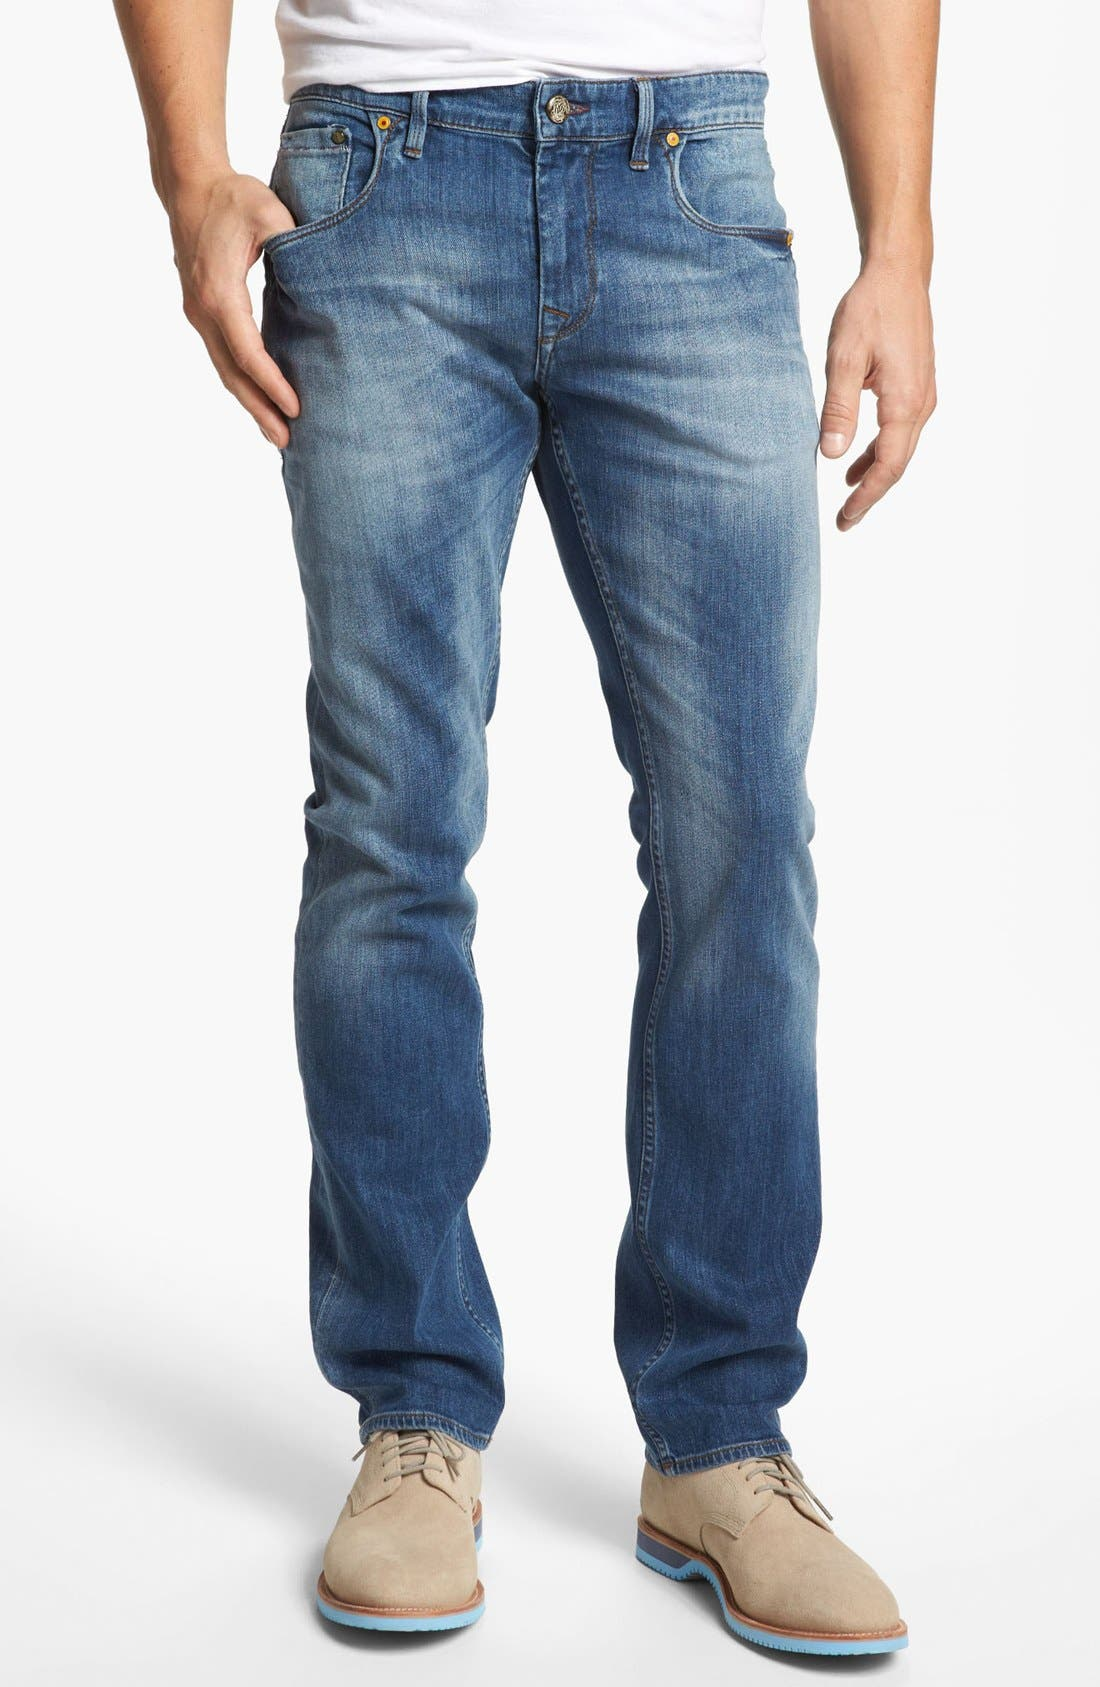 Alternate Image 1 Selected - Robert Graham 'Stretchin' Out' Slim Fit Jeans (Indigo)